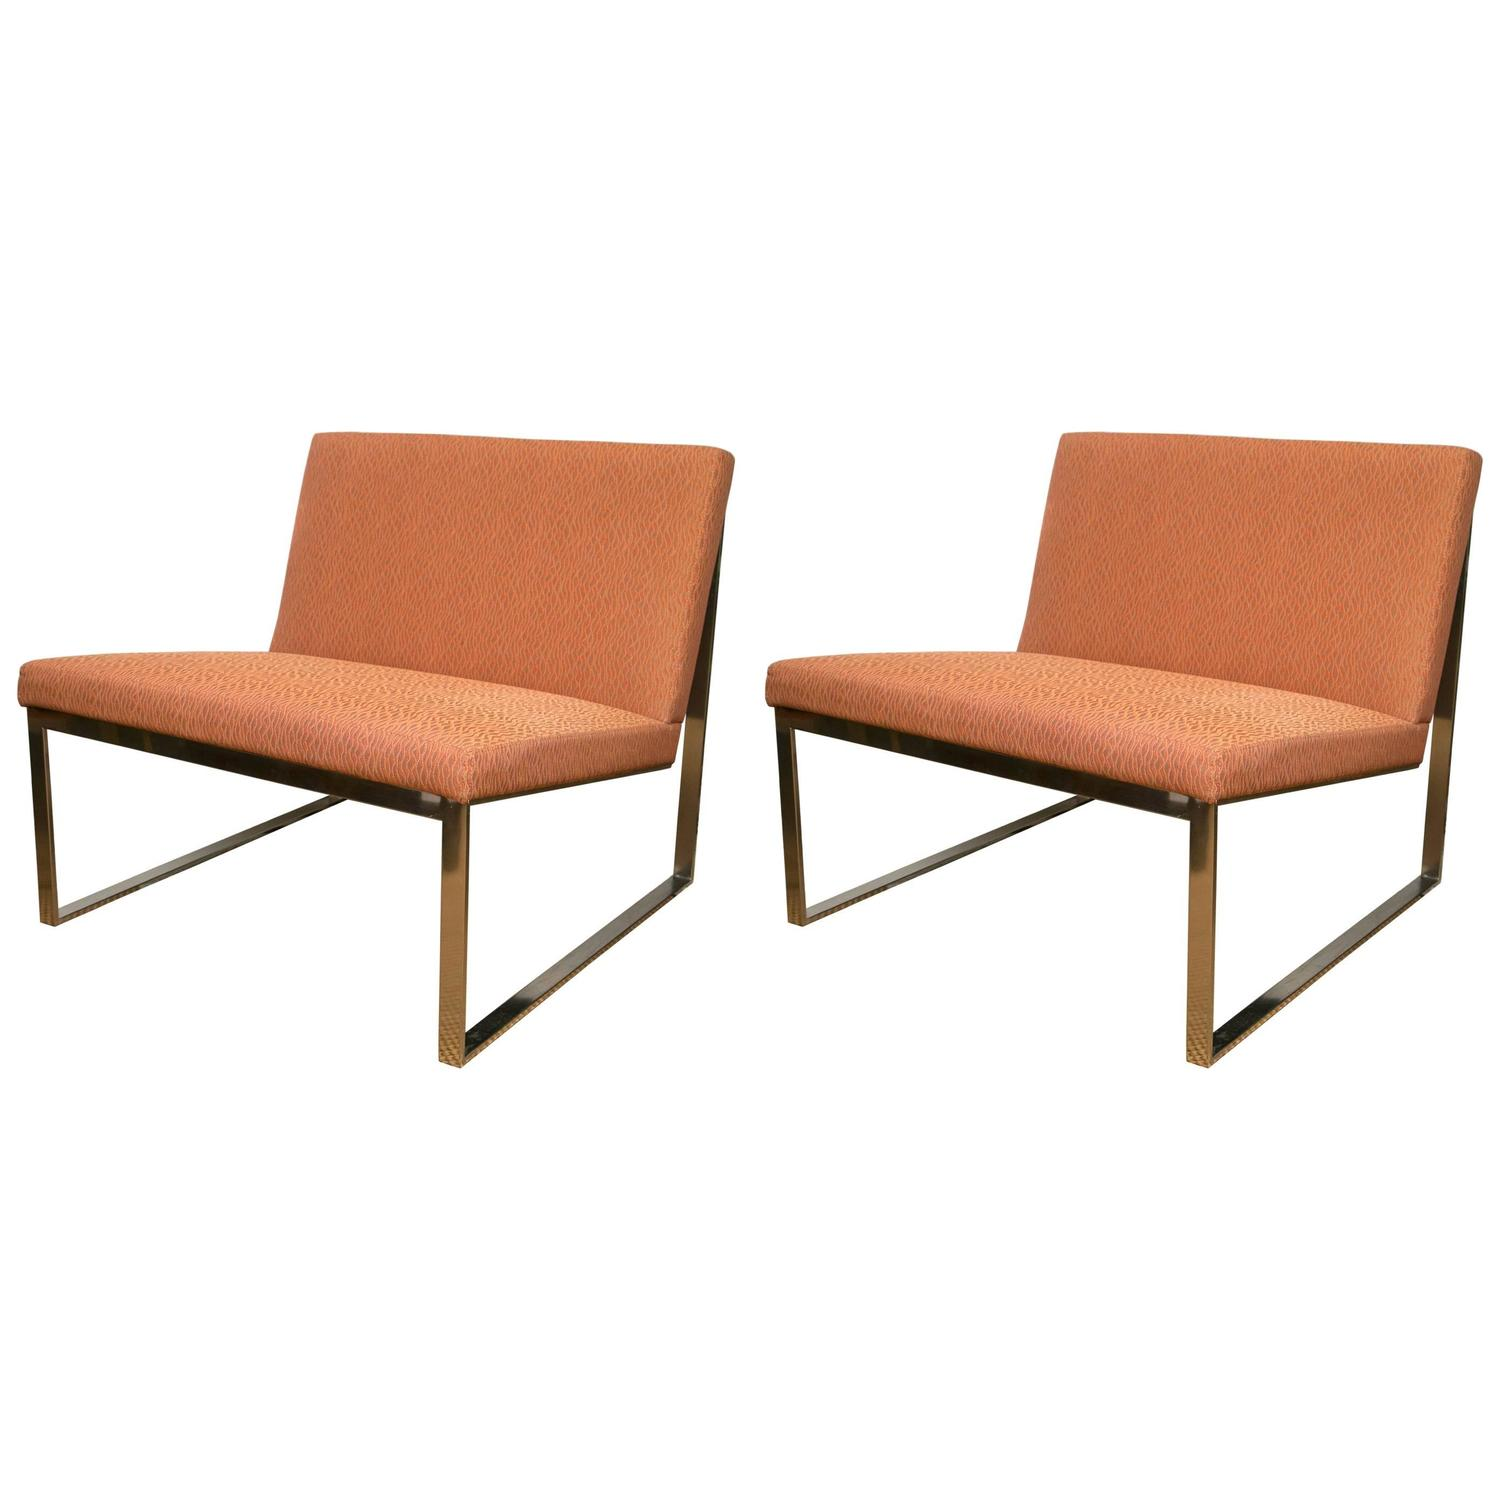 Pair of B2 Chairs by Fabien Baron for Bernhardt For Sale at 1stdibs